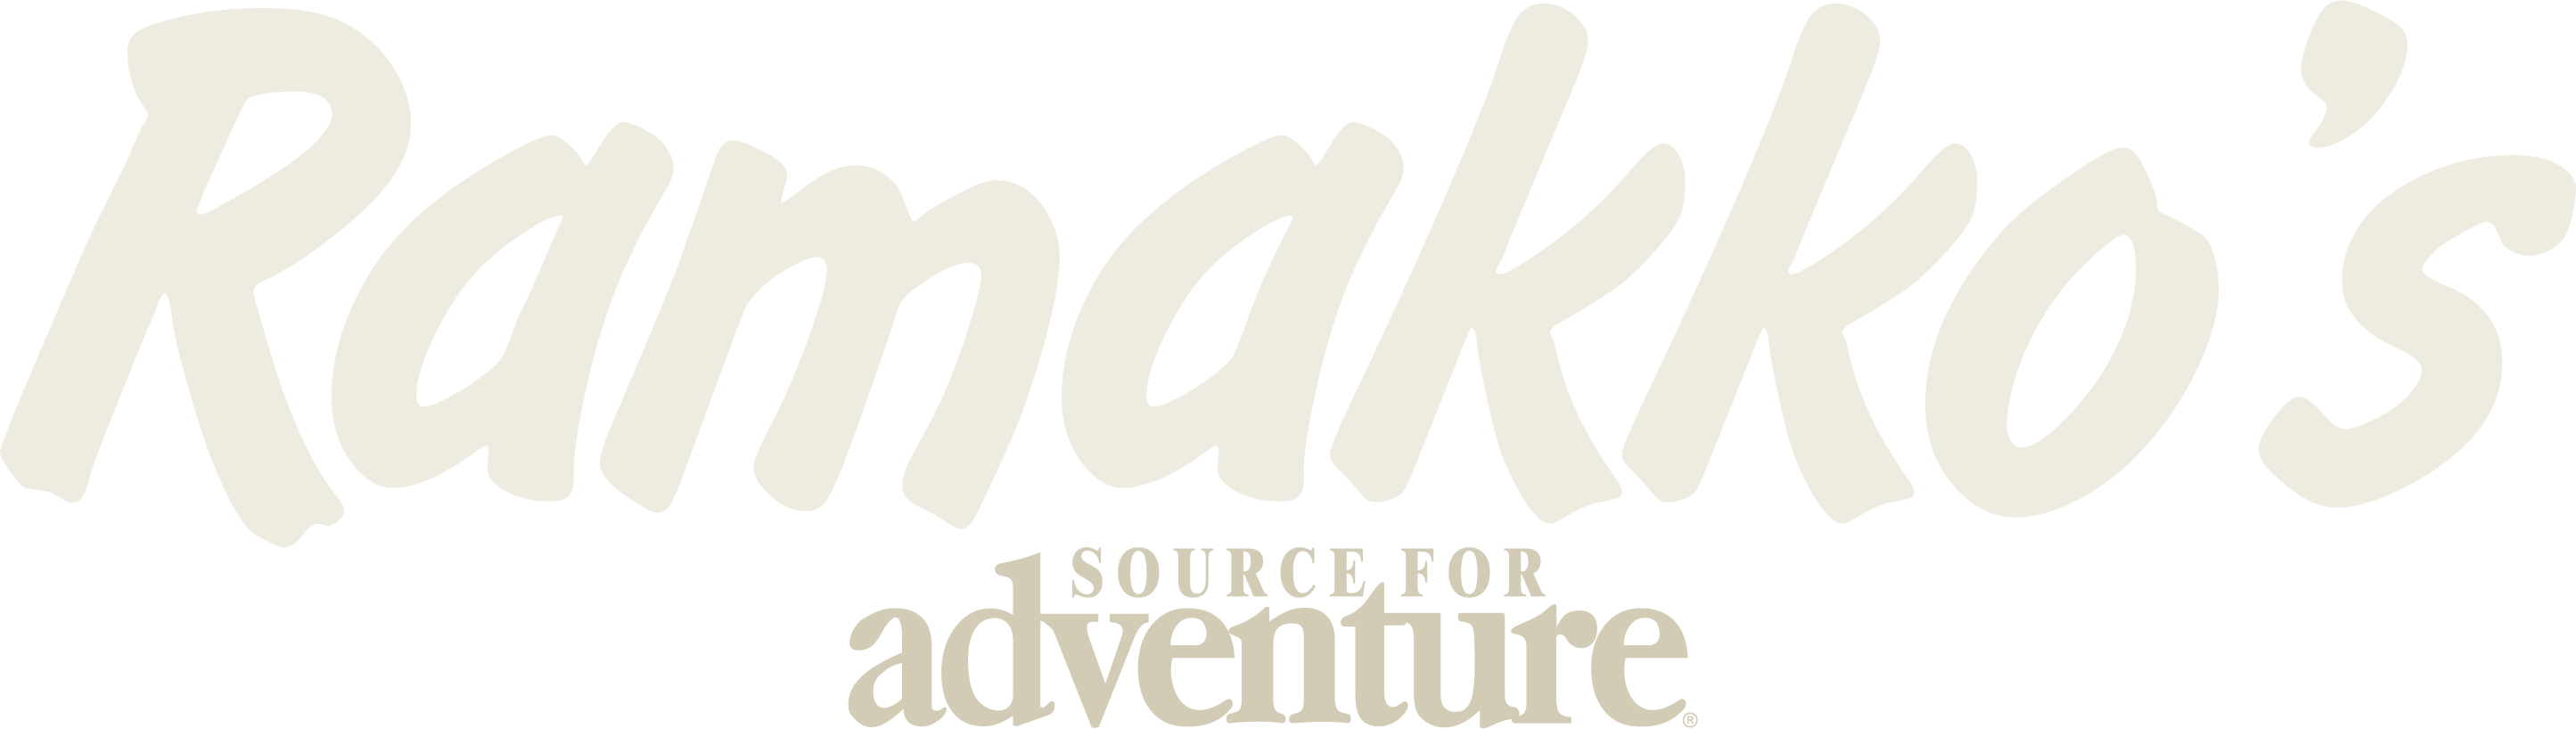 Ramakko's Source for Adventure